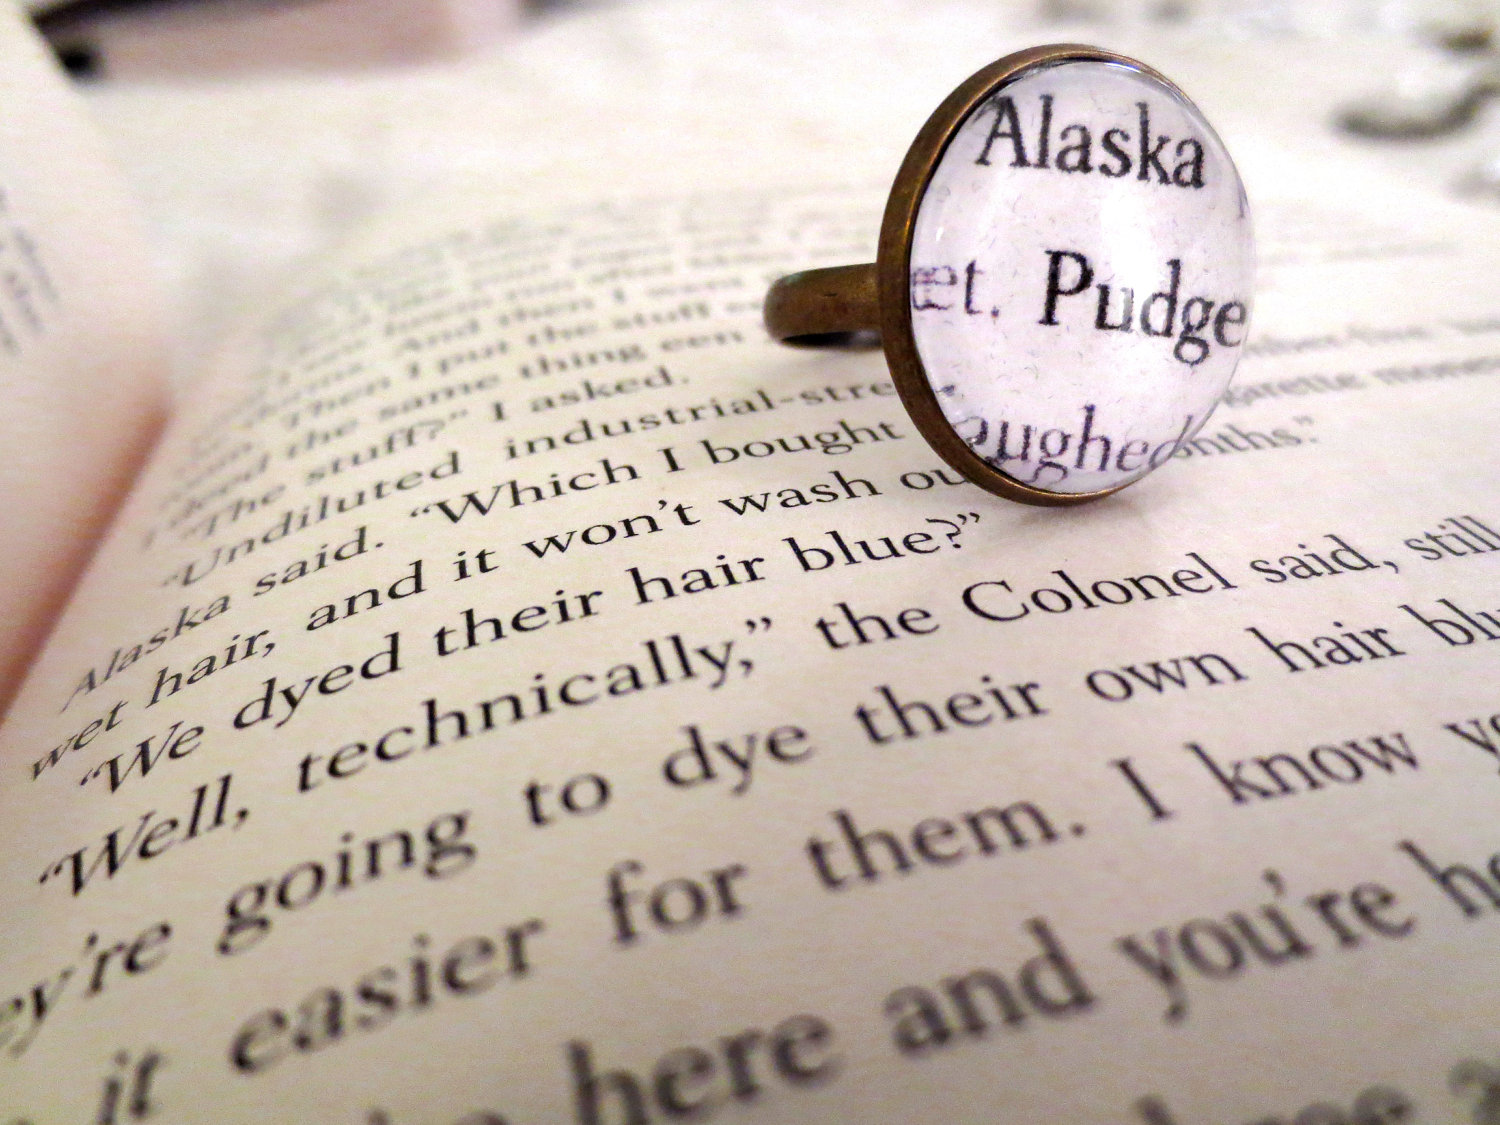 Looking For Alaska Alaska And Pudge Antiqued Bronze Adjustable ...